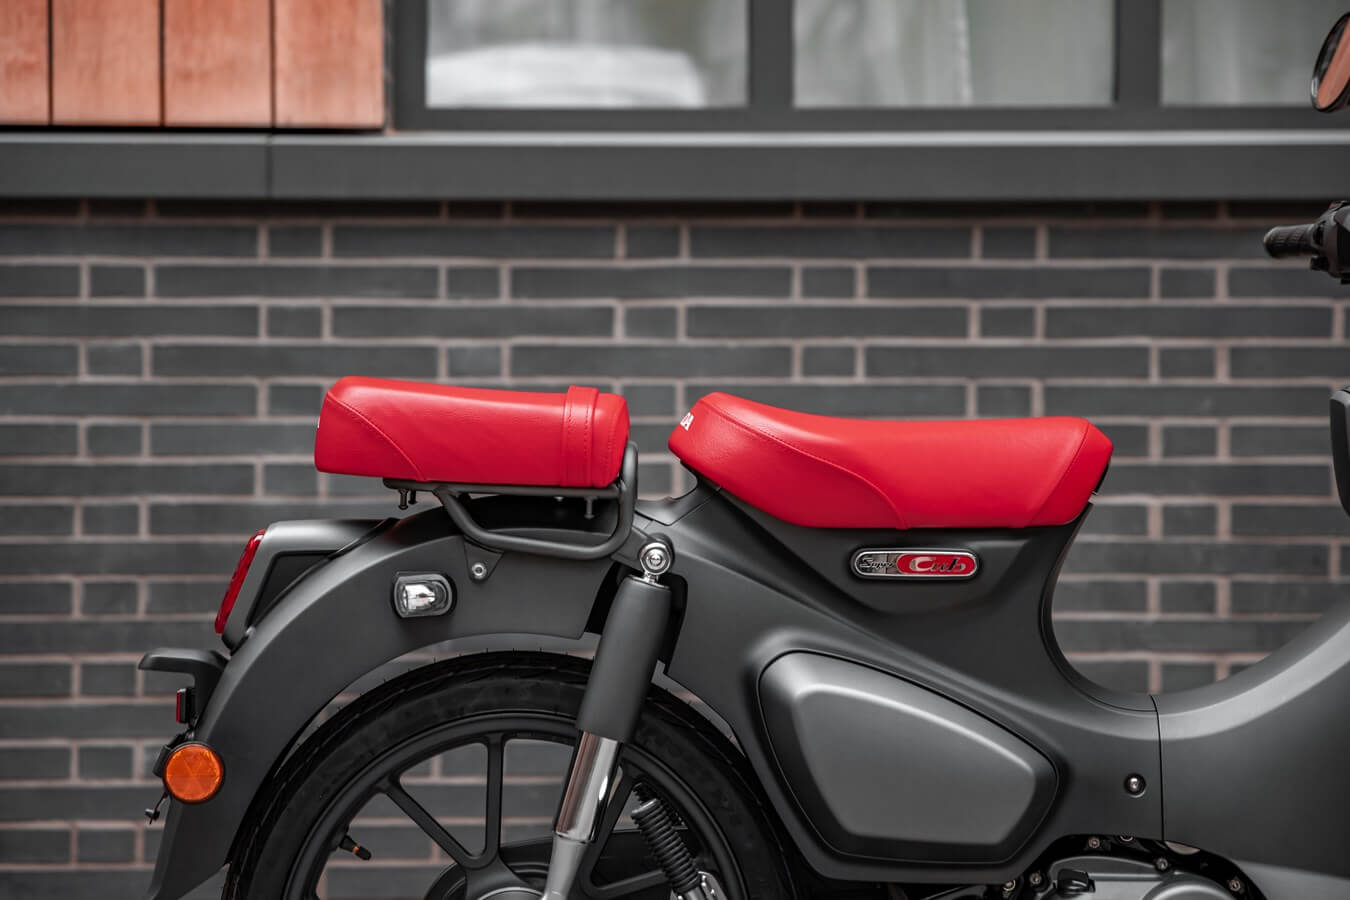 2022 Honda Super Cub 125 Review, Specs, New Changes Explained and more! | C125 Vintage / Retro Style Honda Automatic Motorcycle Scooter